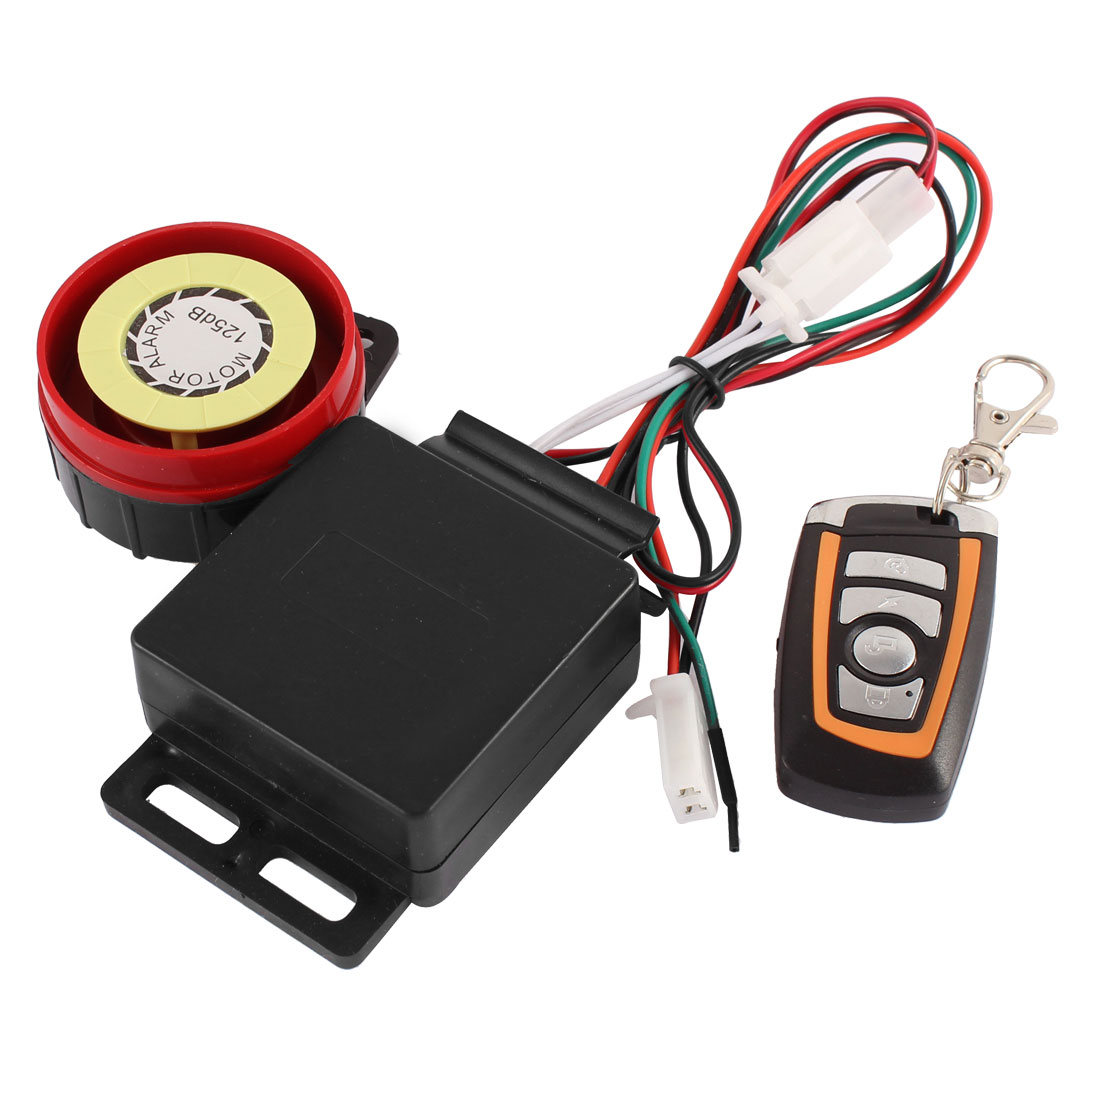 Motorcycle Bike Anti-theft Safety Security Remote Control Alarm System Set 12V